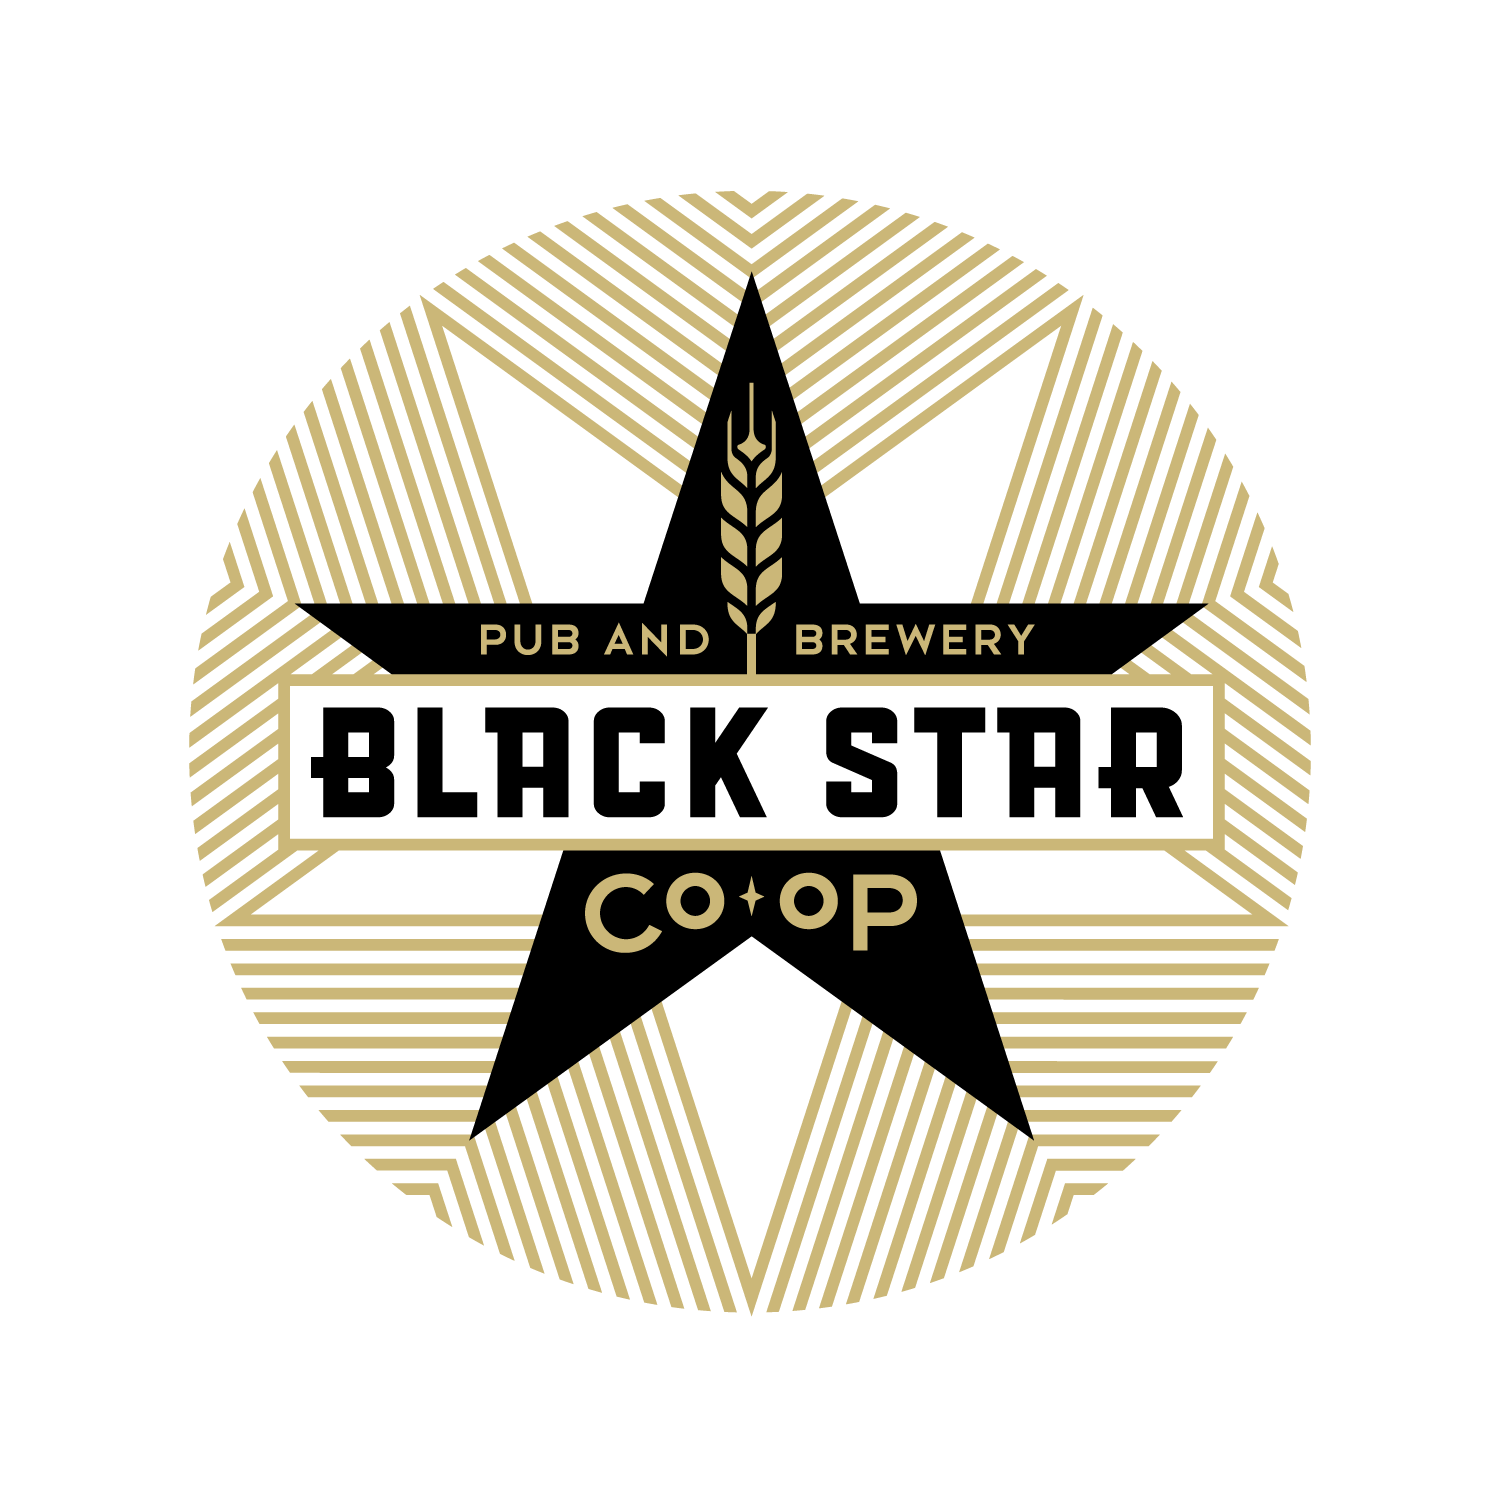 Black Star Co Op